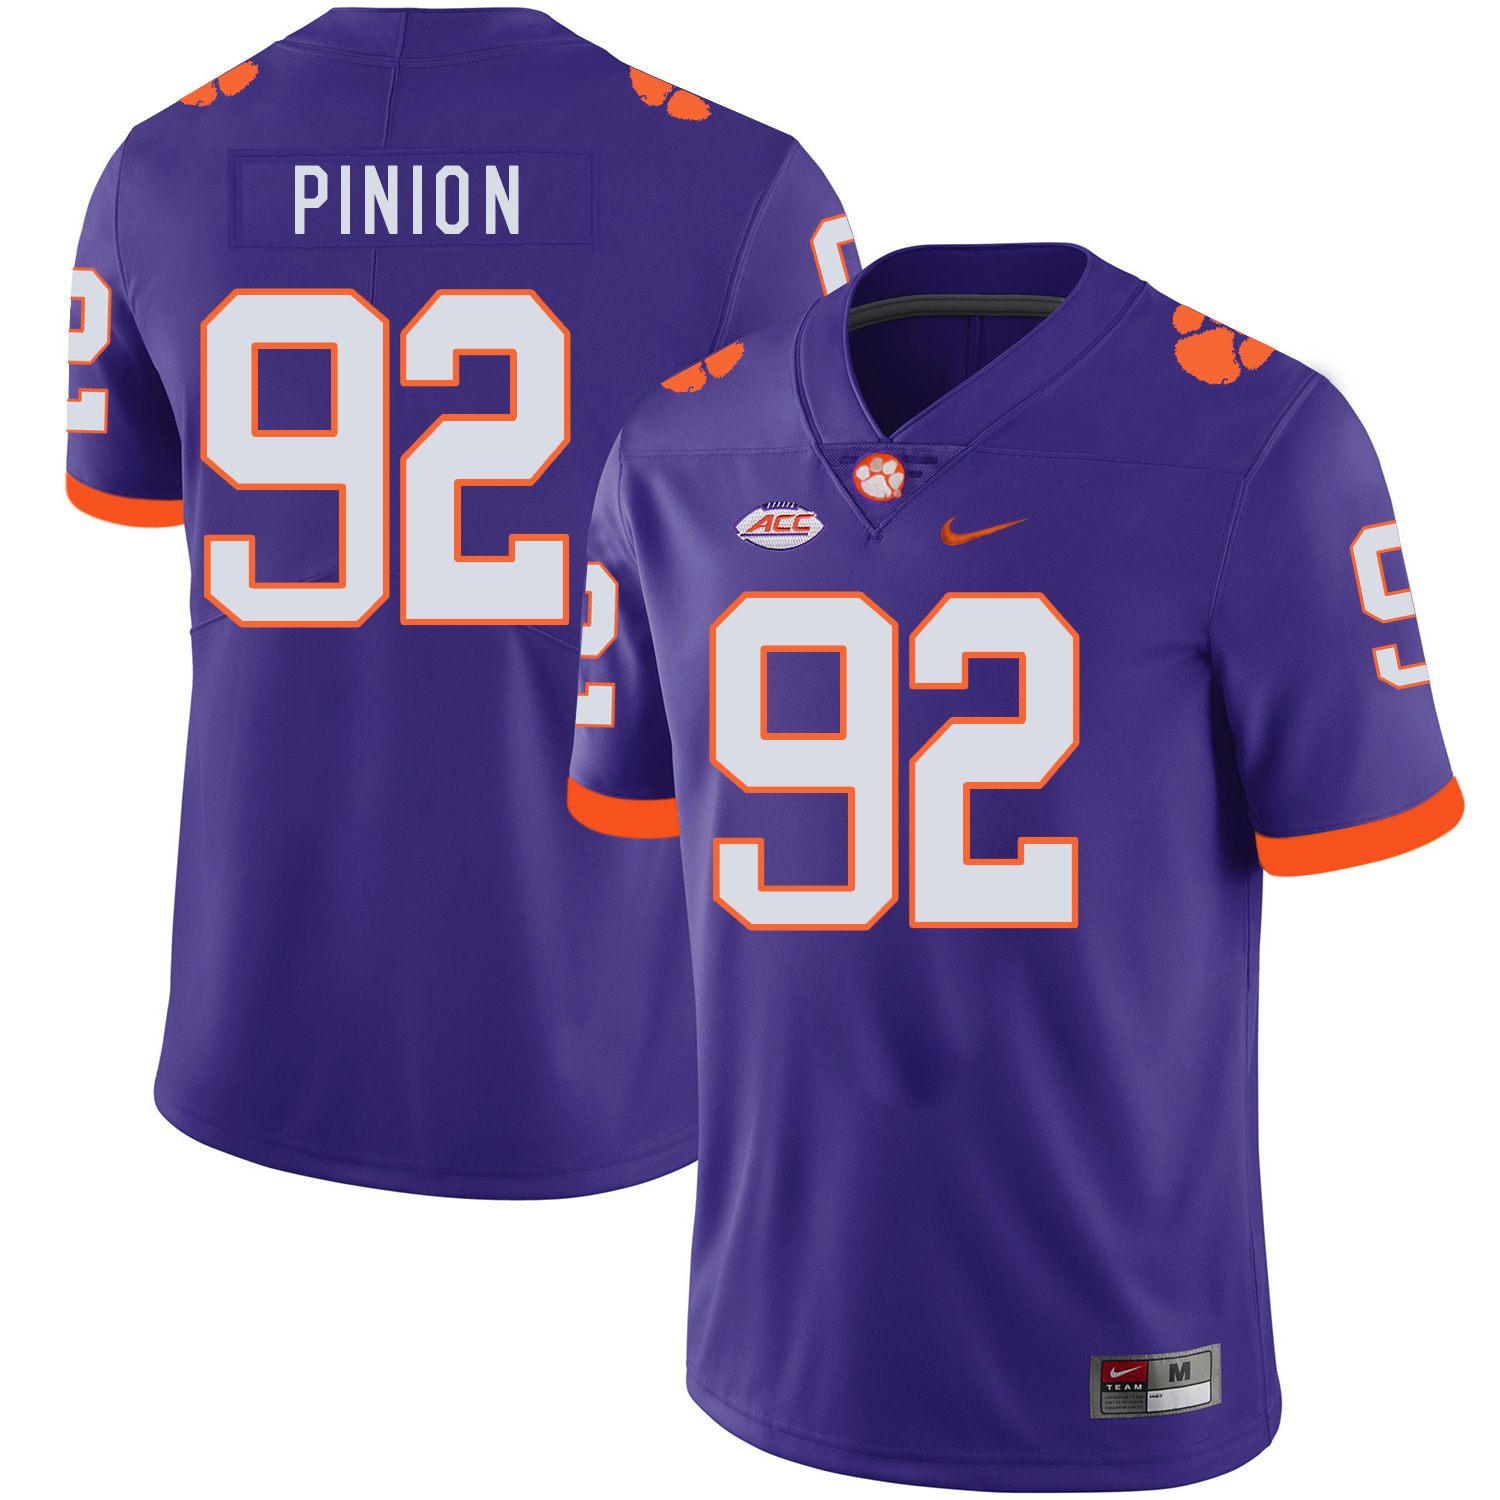 Clemson Tigers 92 Bradley Pinion Purple Nike College Football Jersey